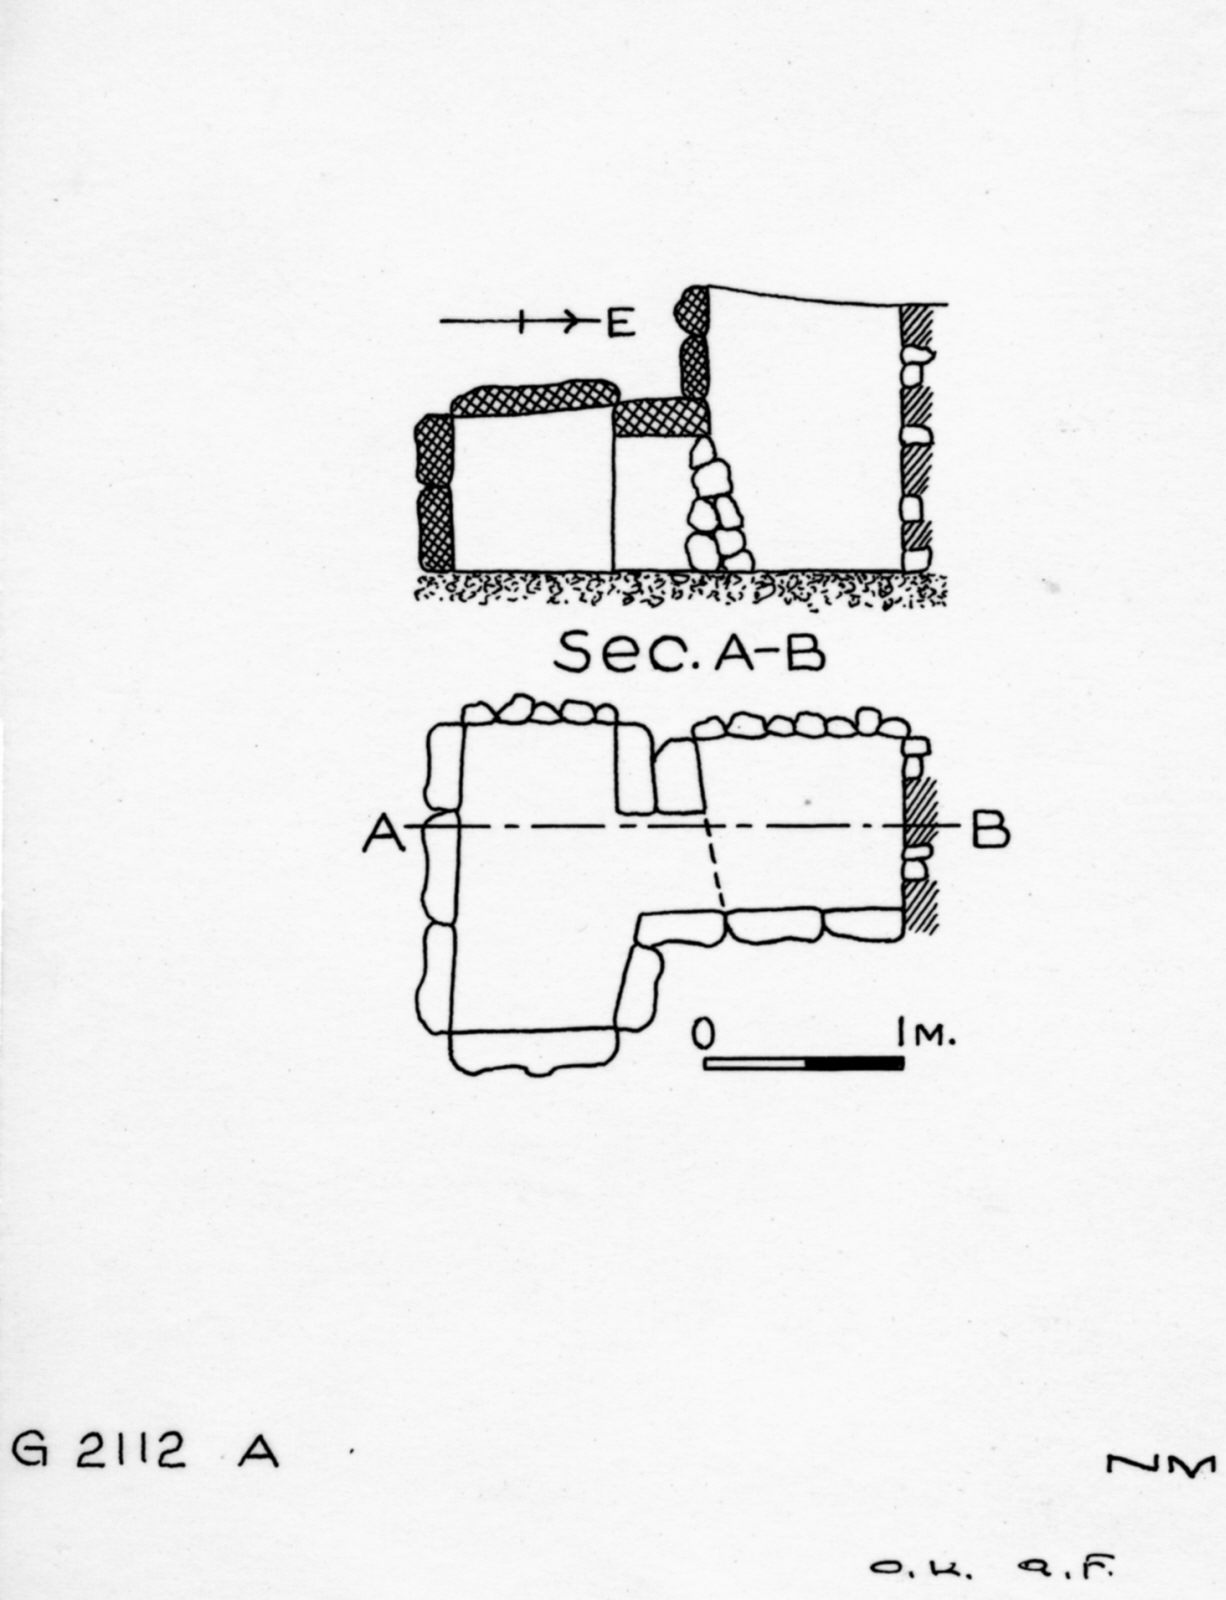 Maps and plans: G 2112, Shaft A